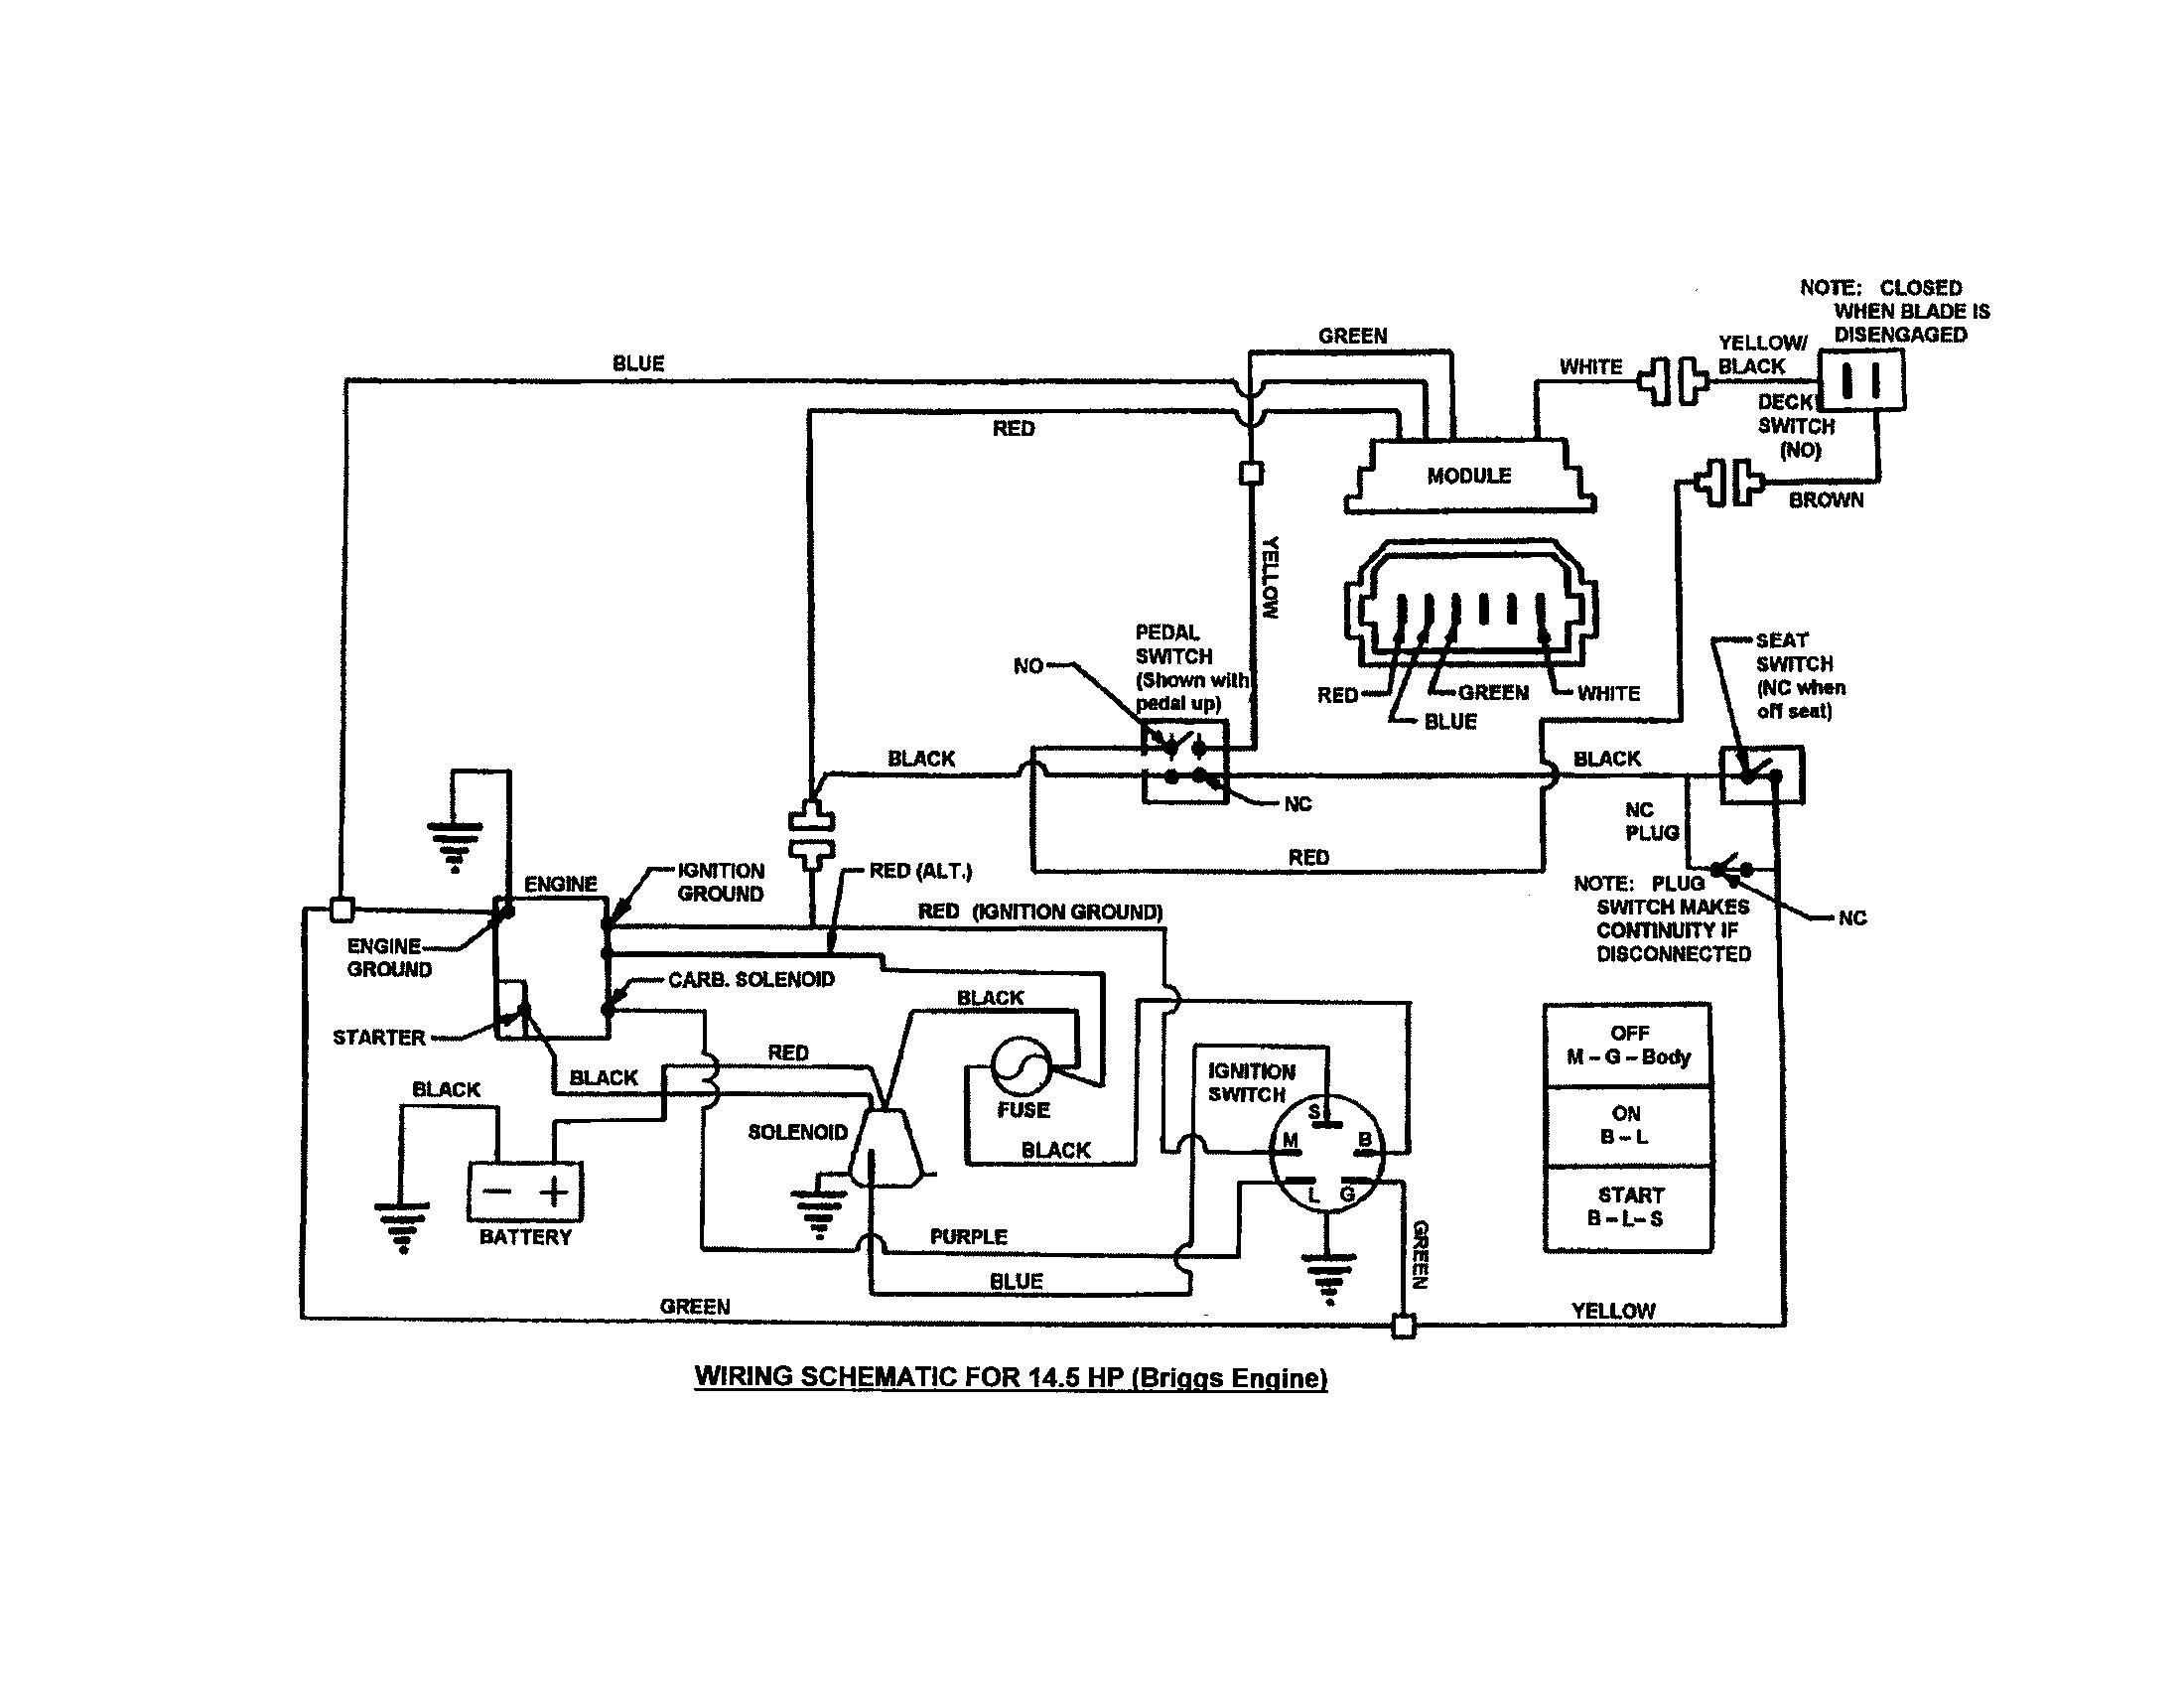 gilson riding lawn mower wiring diagram mtd riding lawn mower wiring diagram wiring diagram for murray riding lawn mower solenoid ...